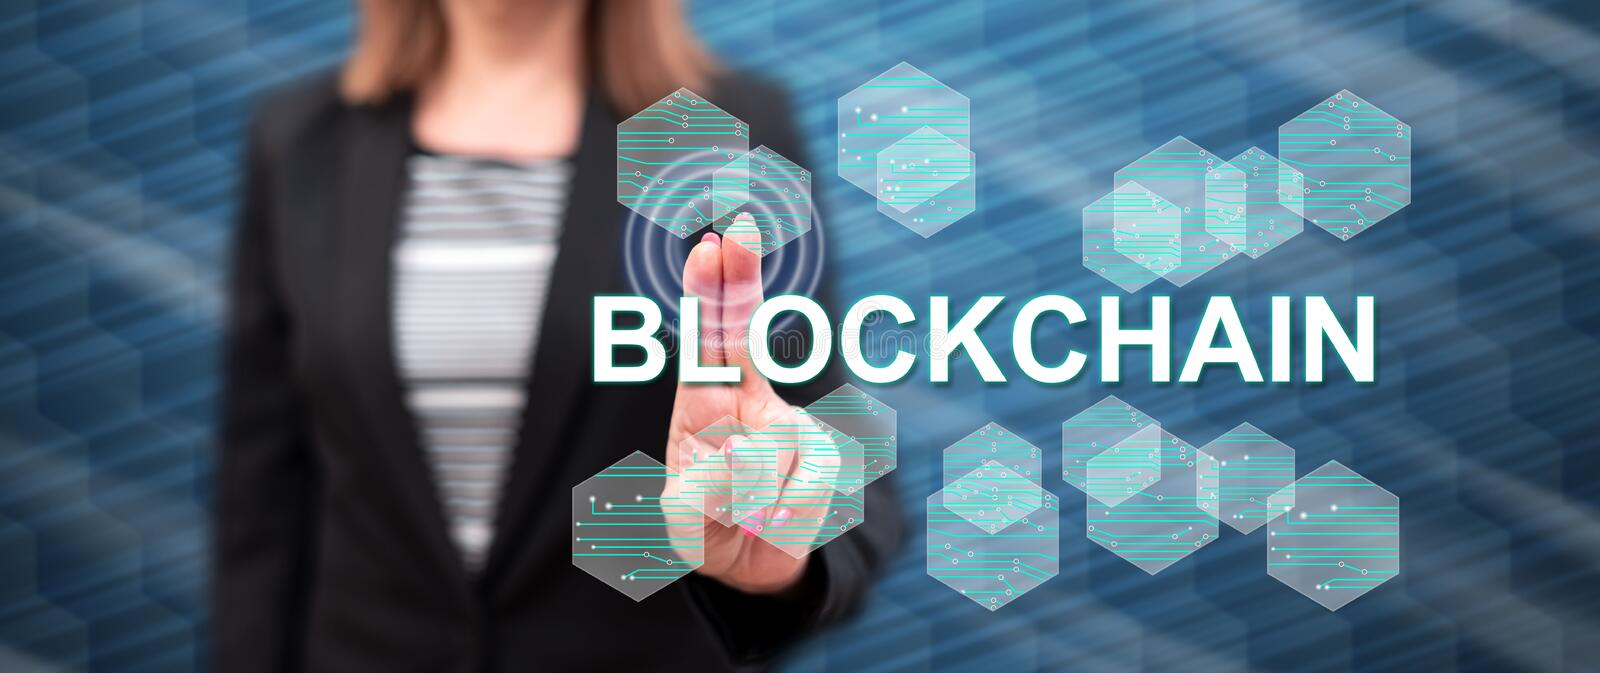 Woman touching a blockchain concept royalty free stock images